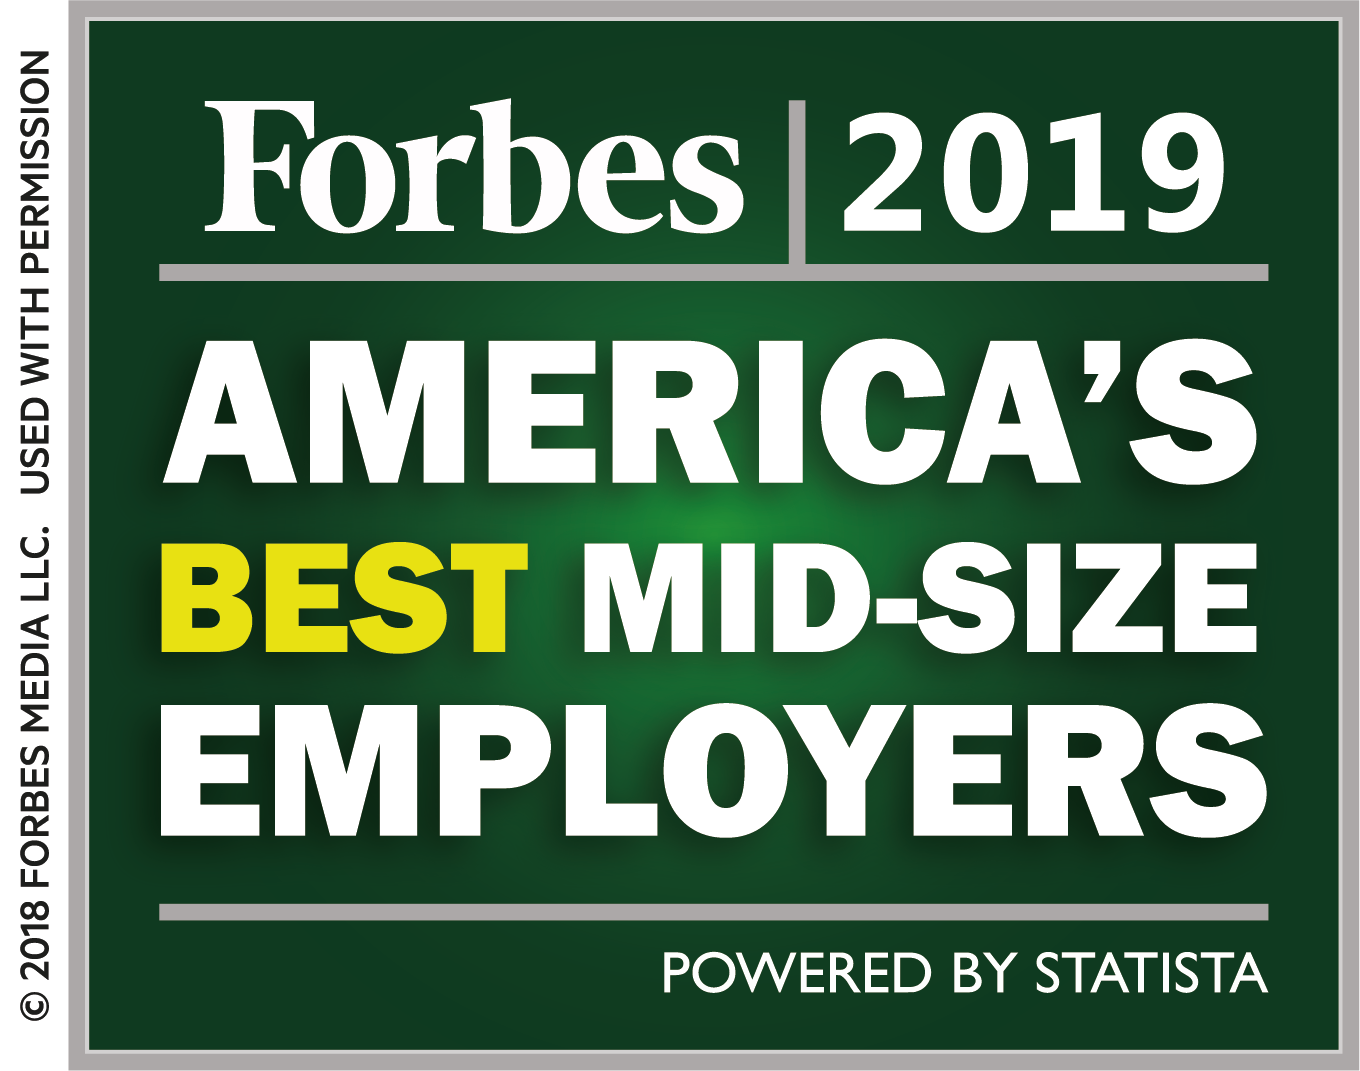 Logo for Forbes magazine's 2019 ranking of America's Best Mid-size Employers.